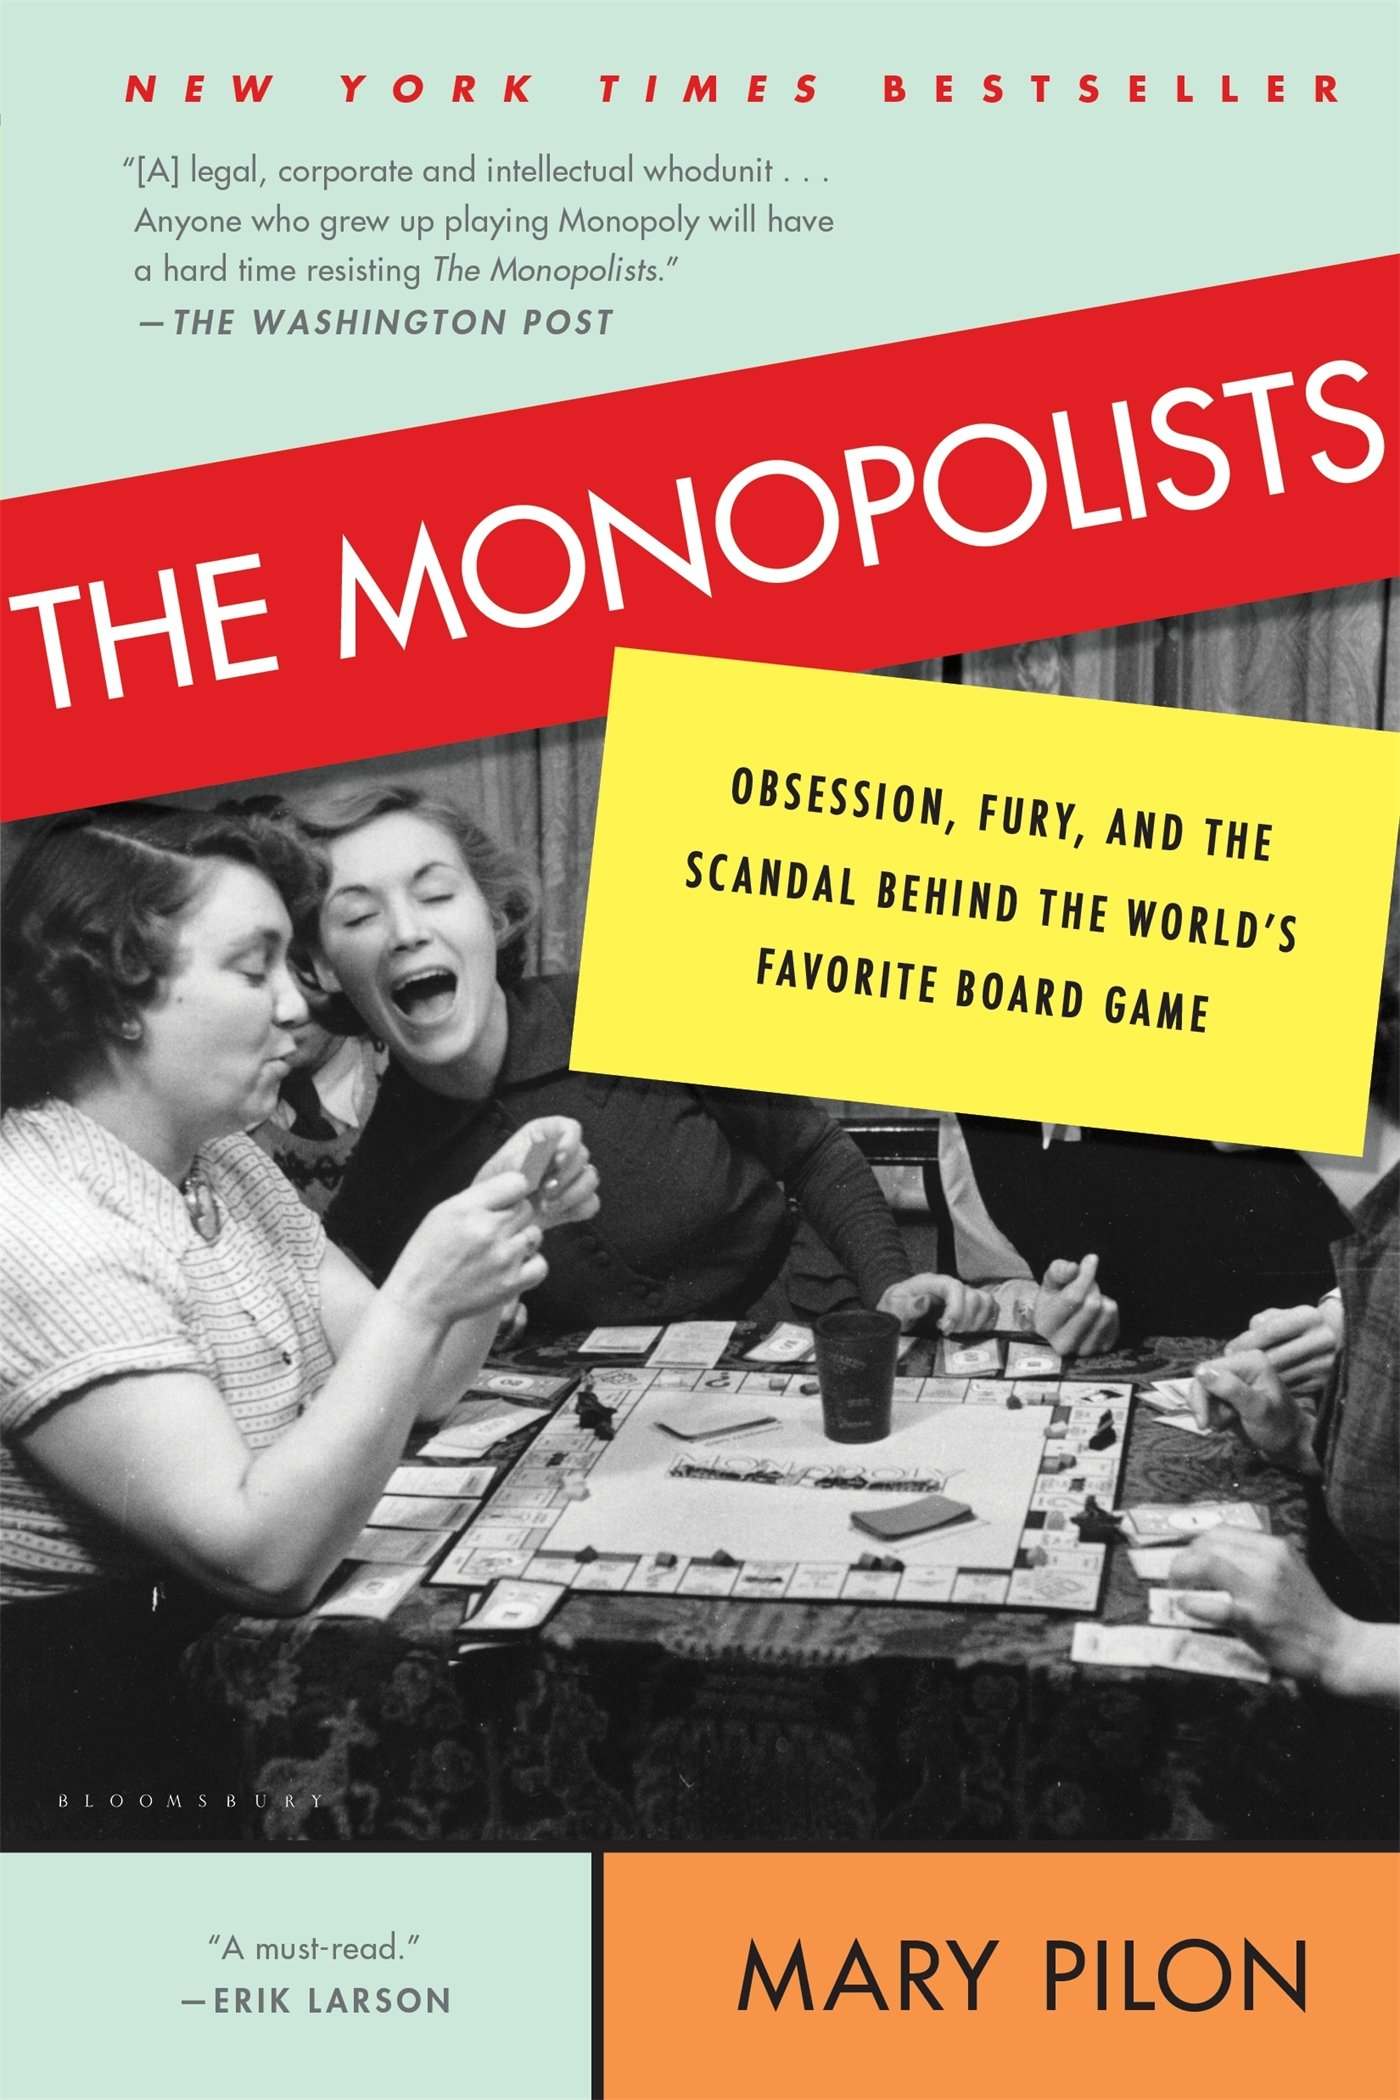 The Monopolists: Obsession, Fury, and the Scandal Behind the Worlds Favorite Board Game: Amazon.es: Pilon, Mary: Libros en idiomas extranjeros